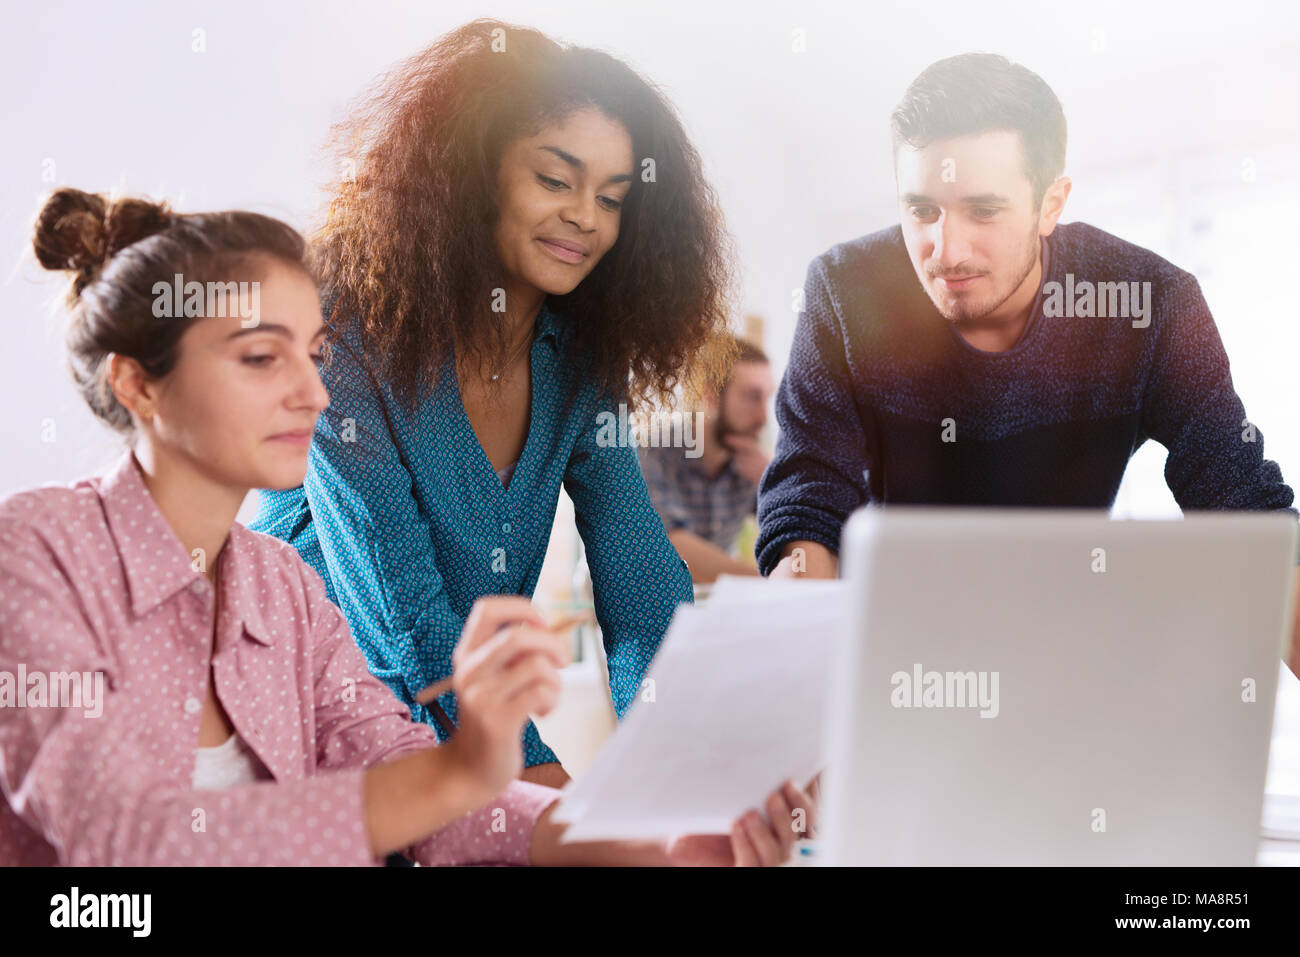 At office. A young multi-ethnic work team exchanges ideas ar - Stock Image